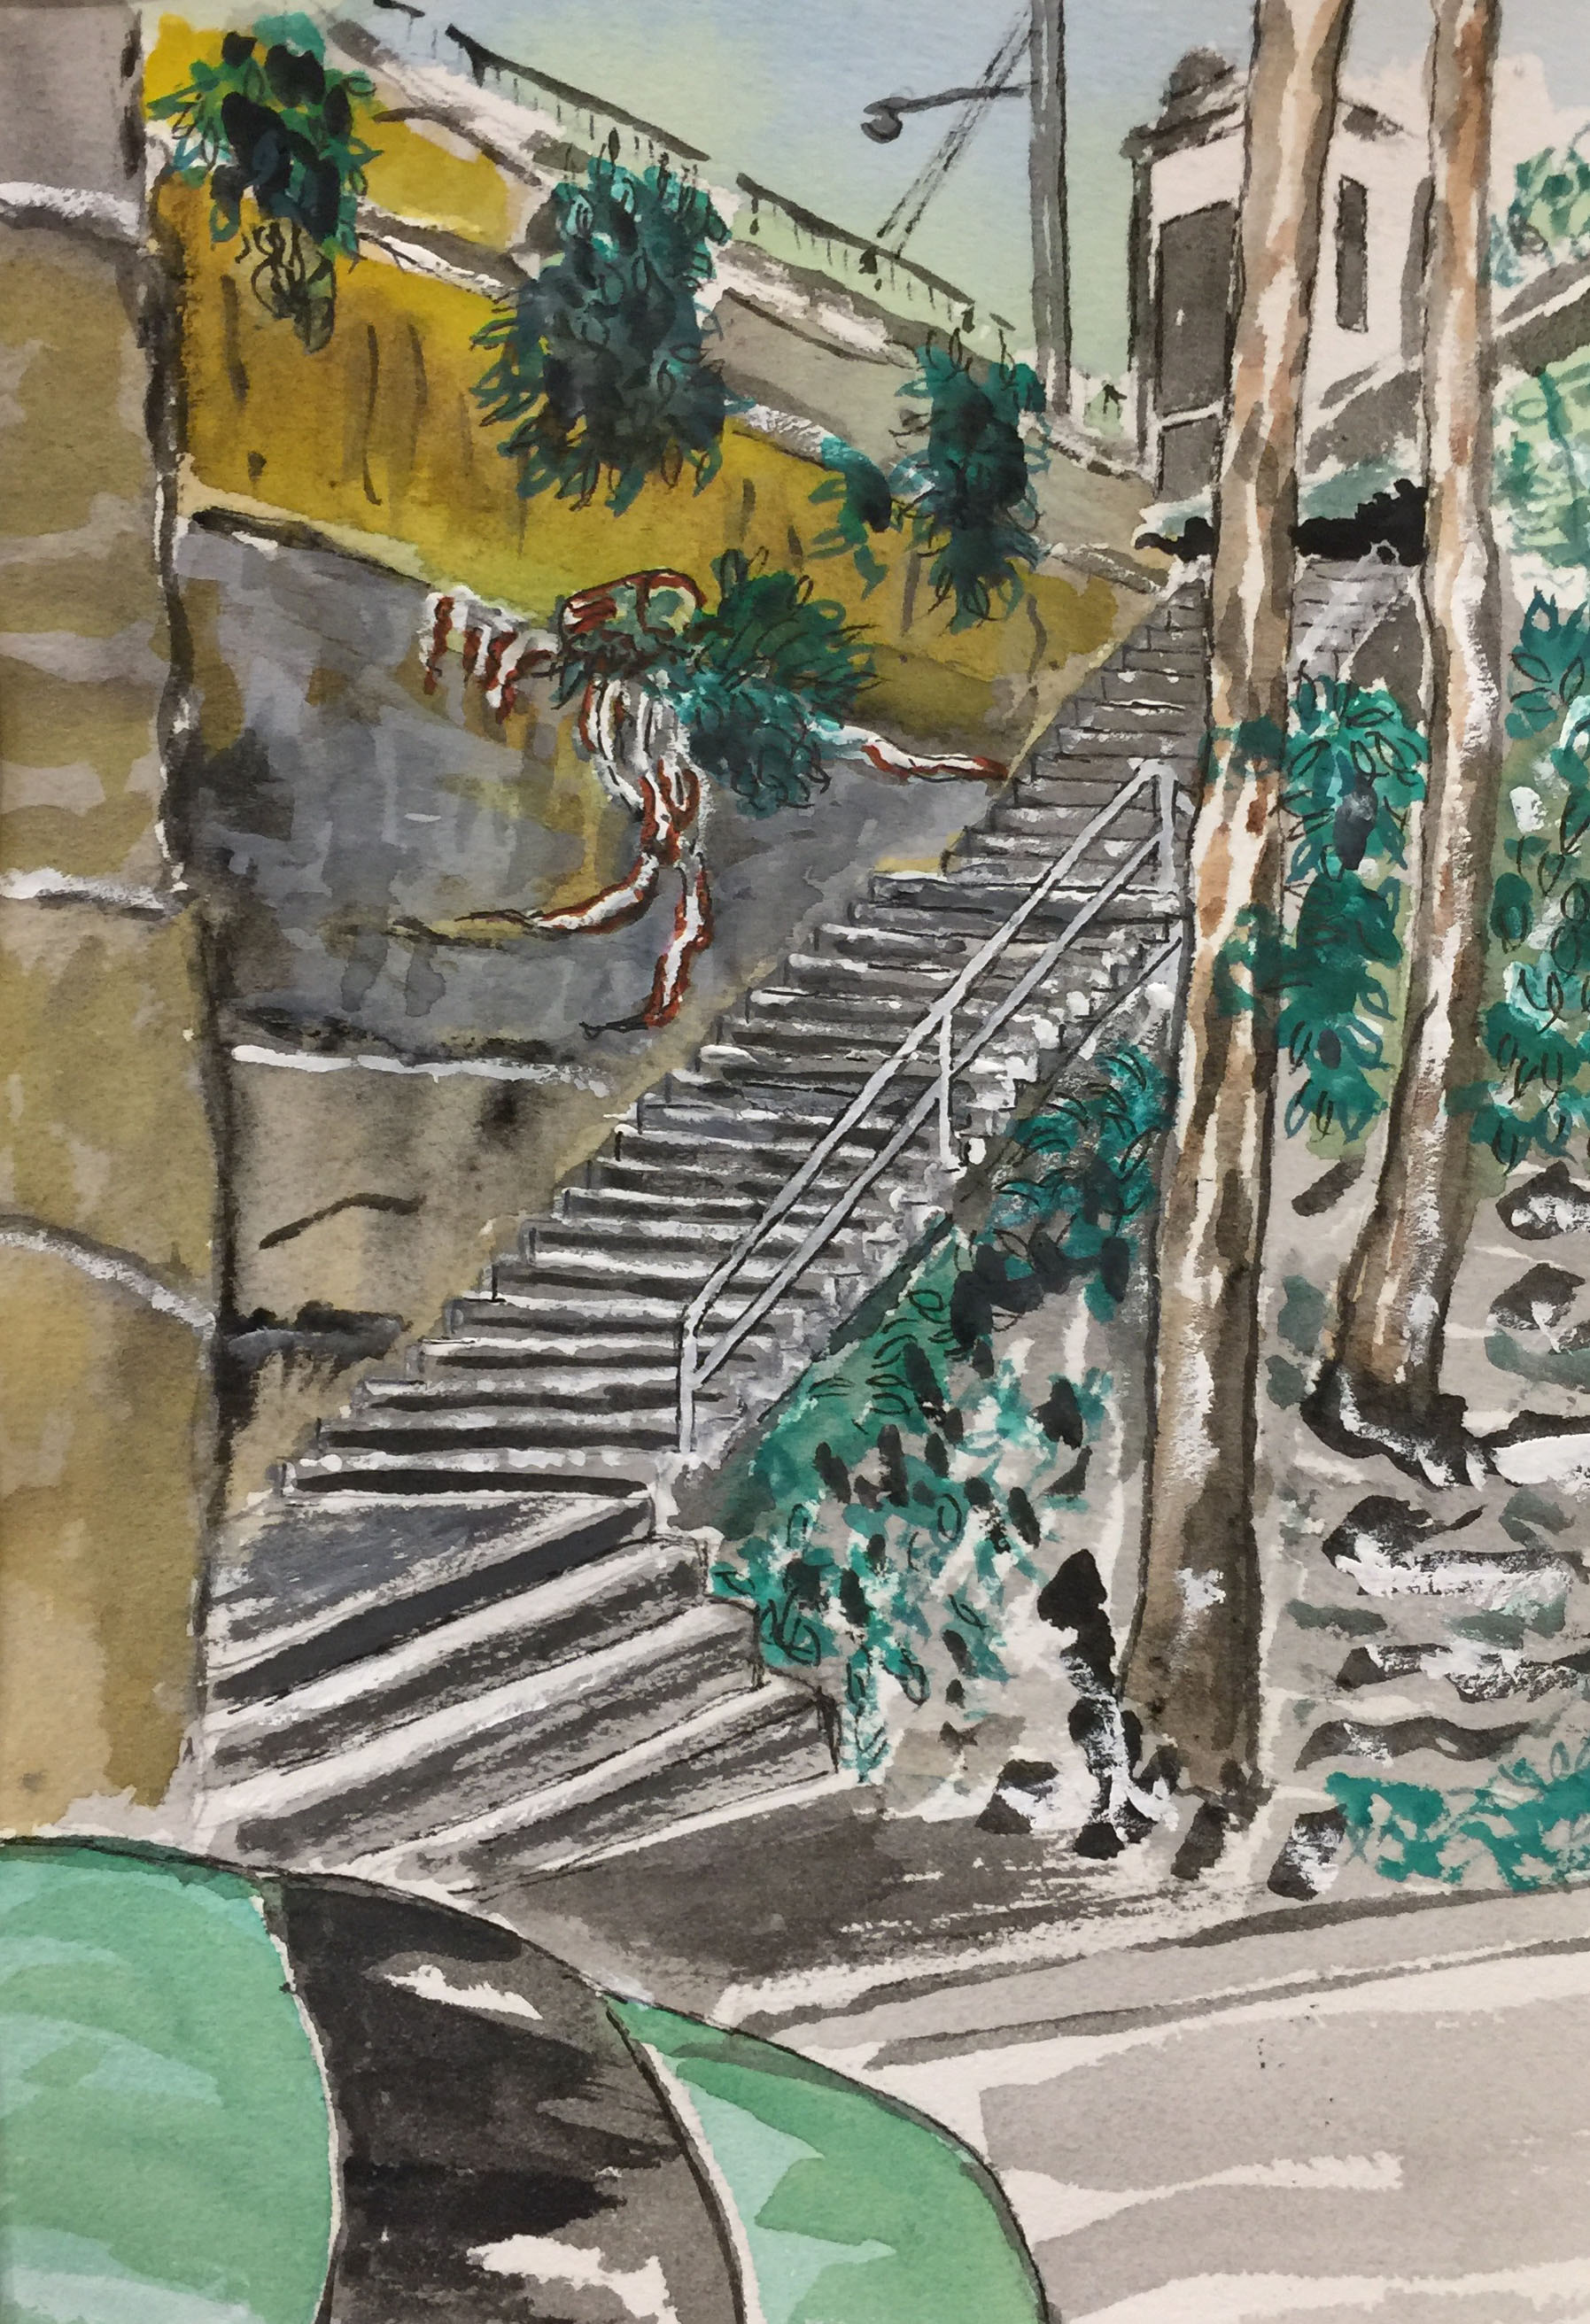 Glebe steps. From Railway St up to Darghan St